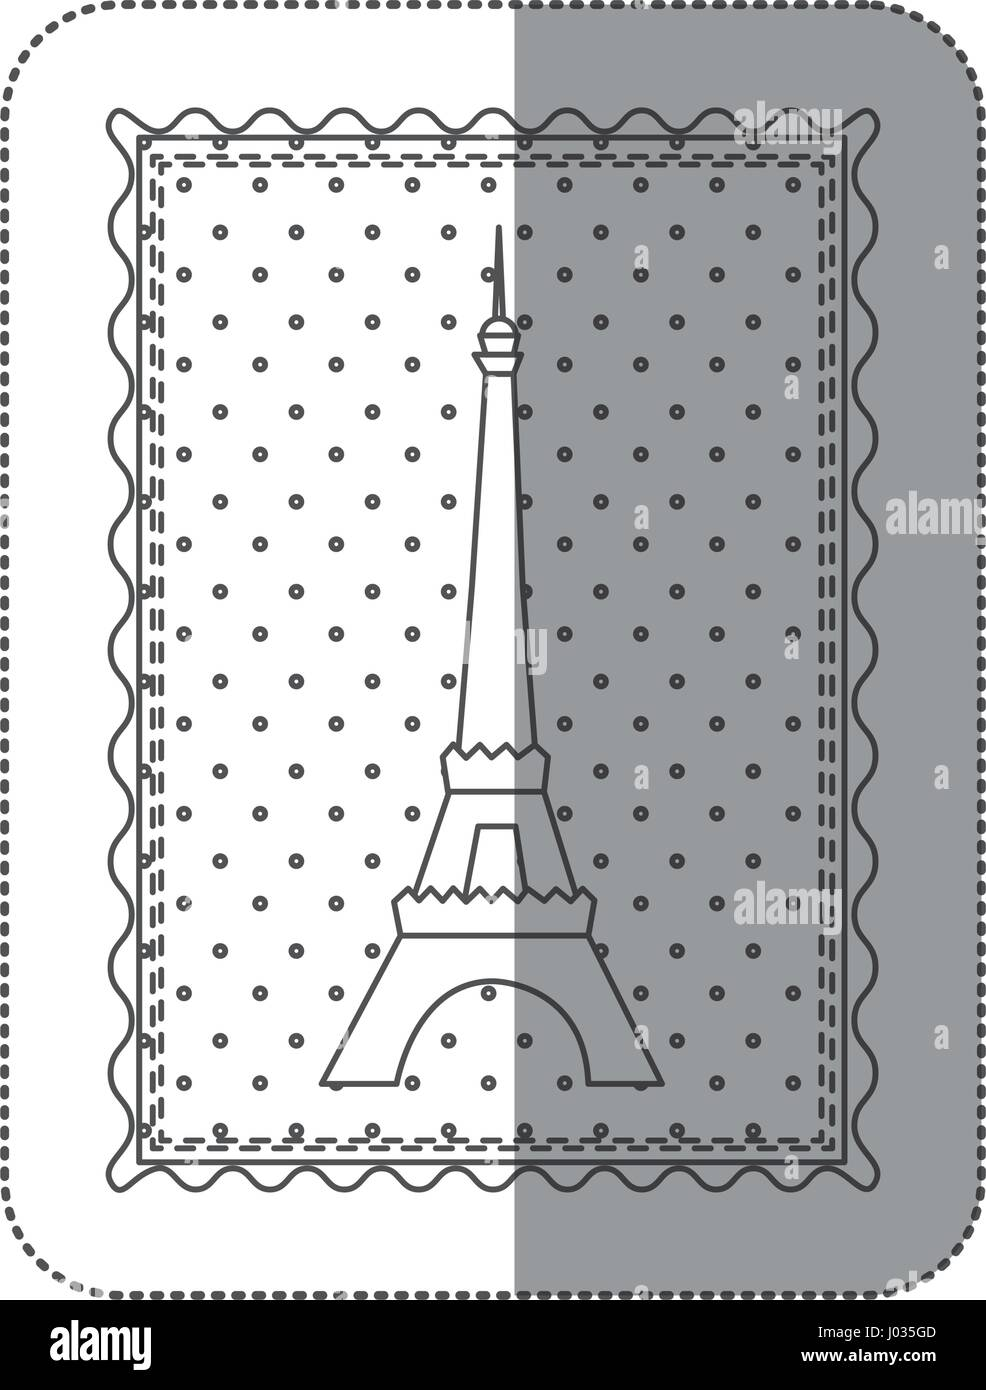 sticker contour frame of eiffel tower with background dotted - Stock Vector